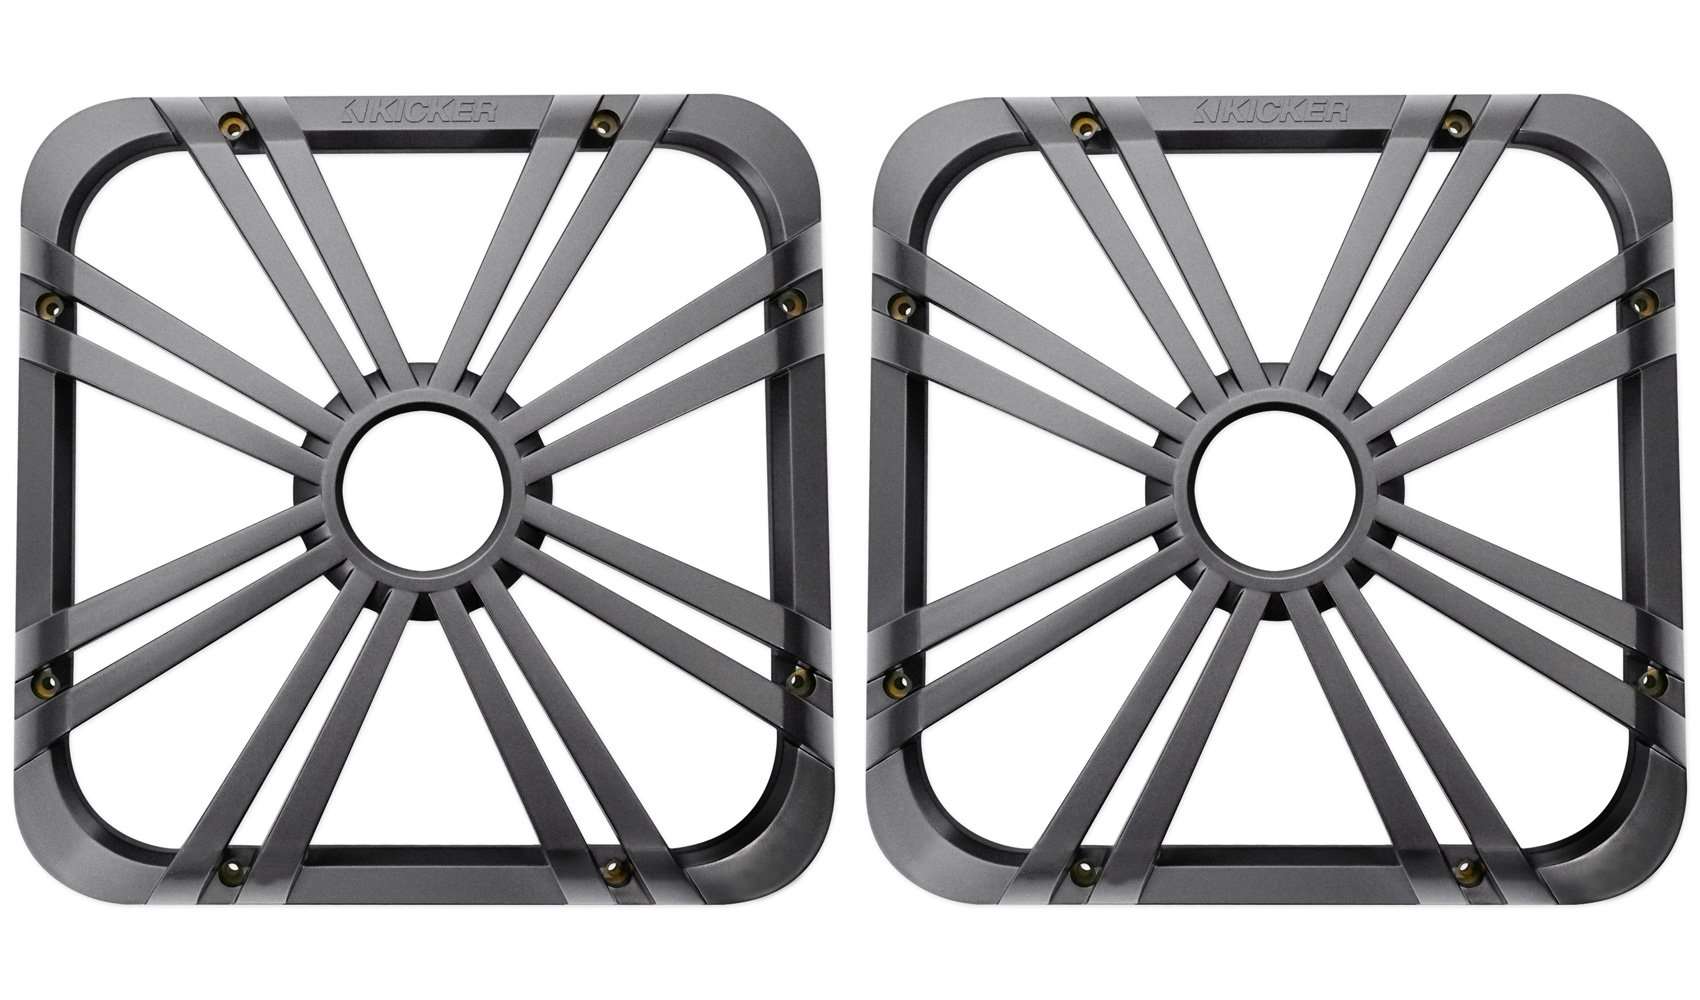 (2) Kicker 11L712GLCR 12'' Chrome Grilles With LED Lighting For SoloBaric 11S12L7 Subwoofer by KICKER